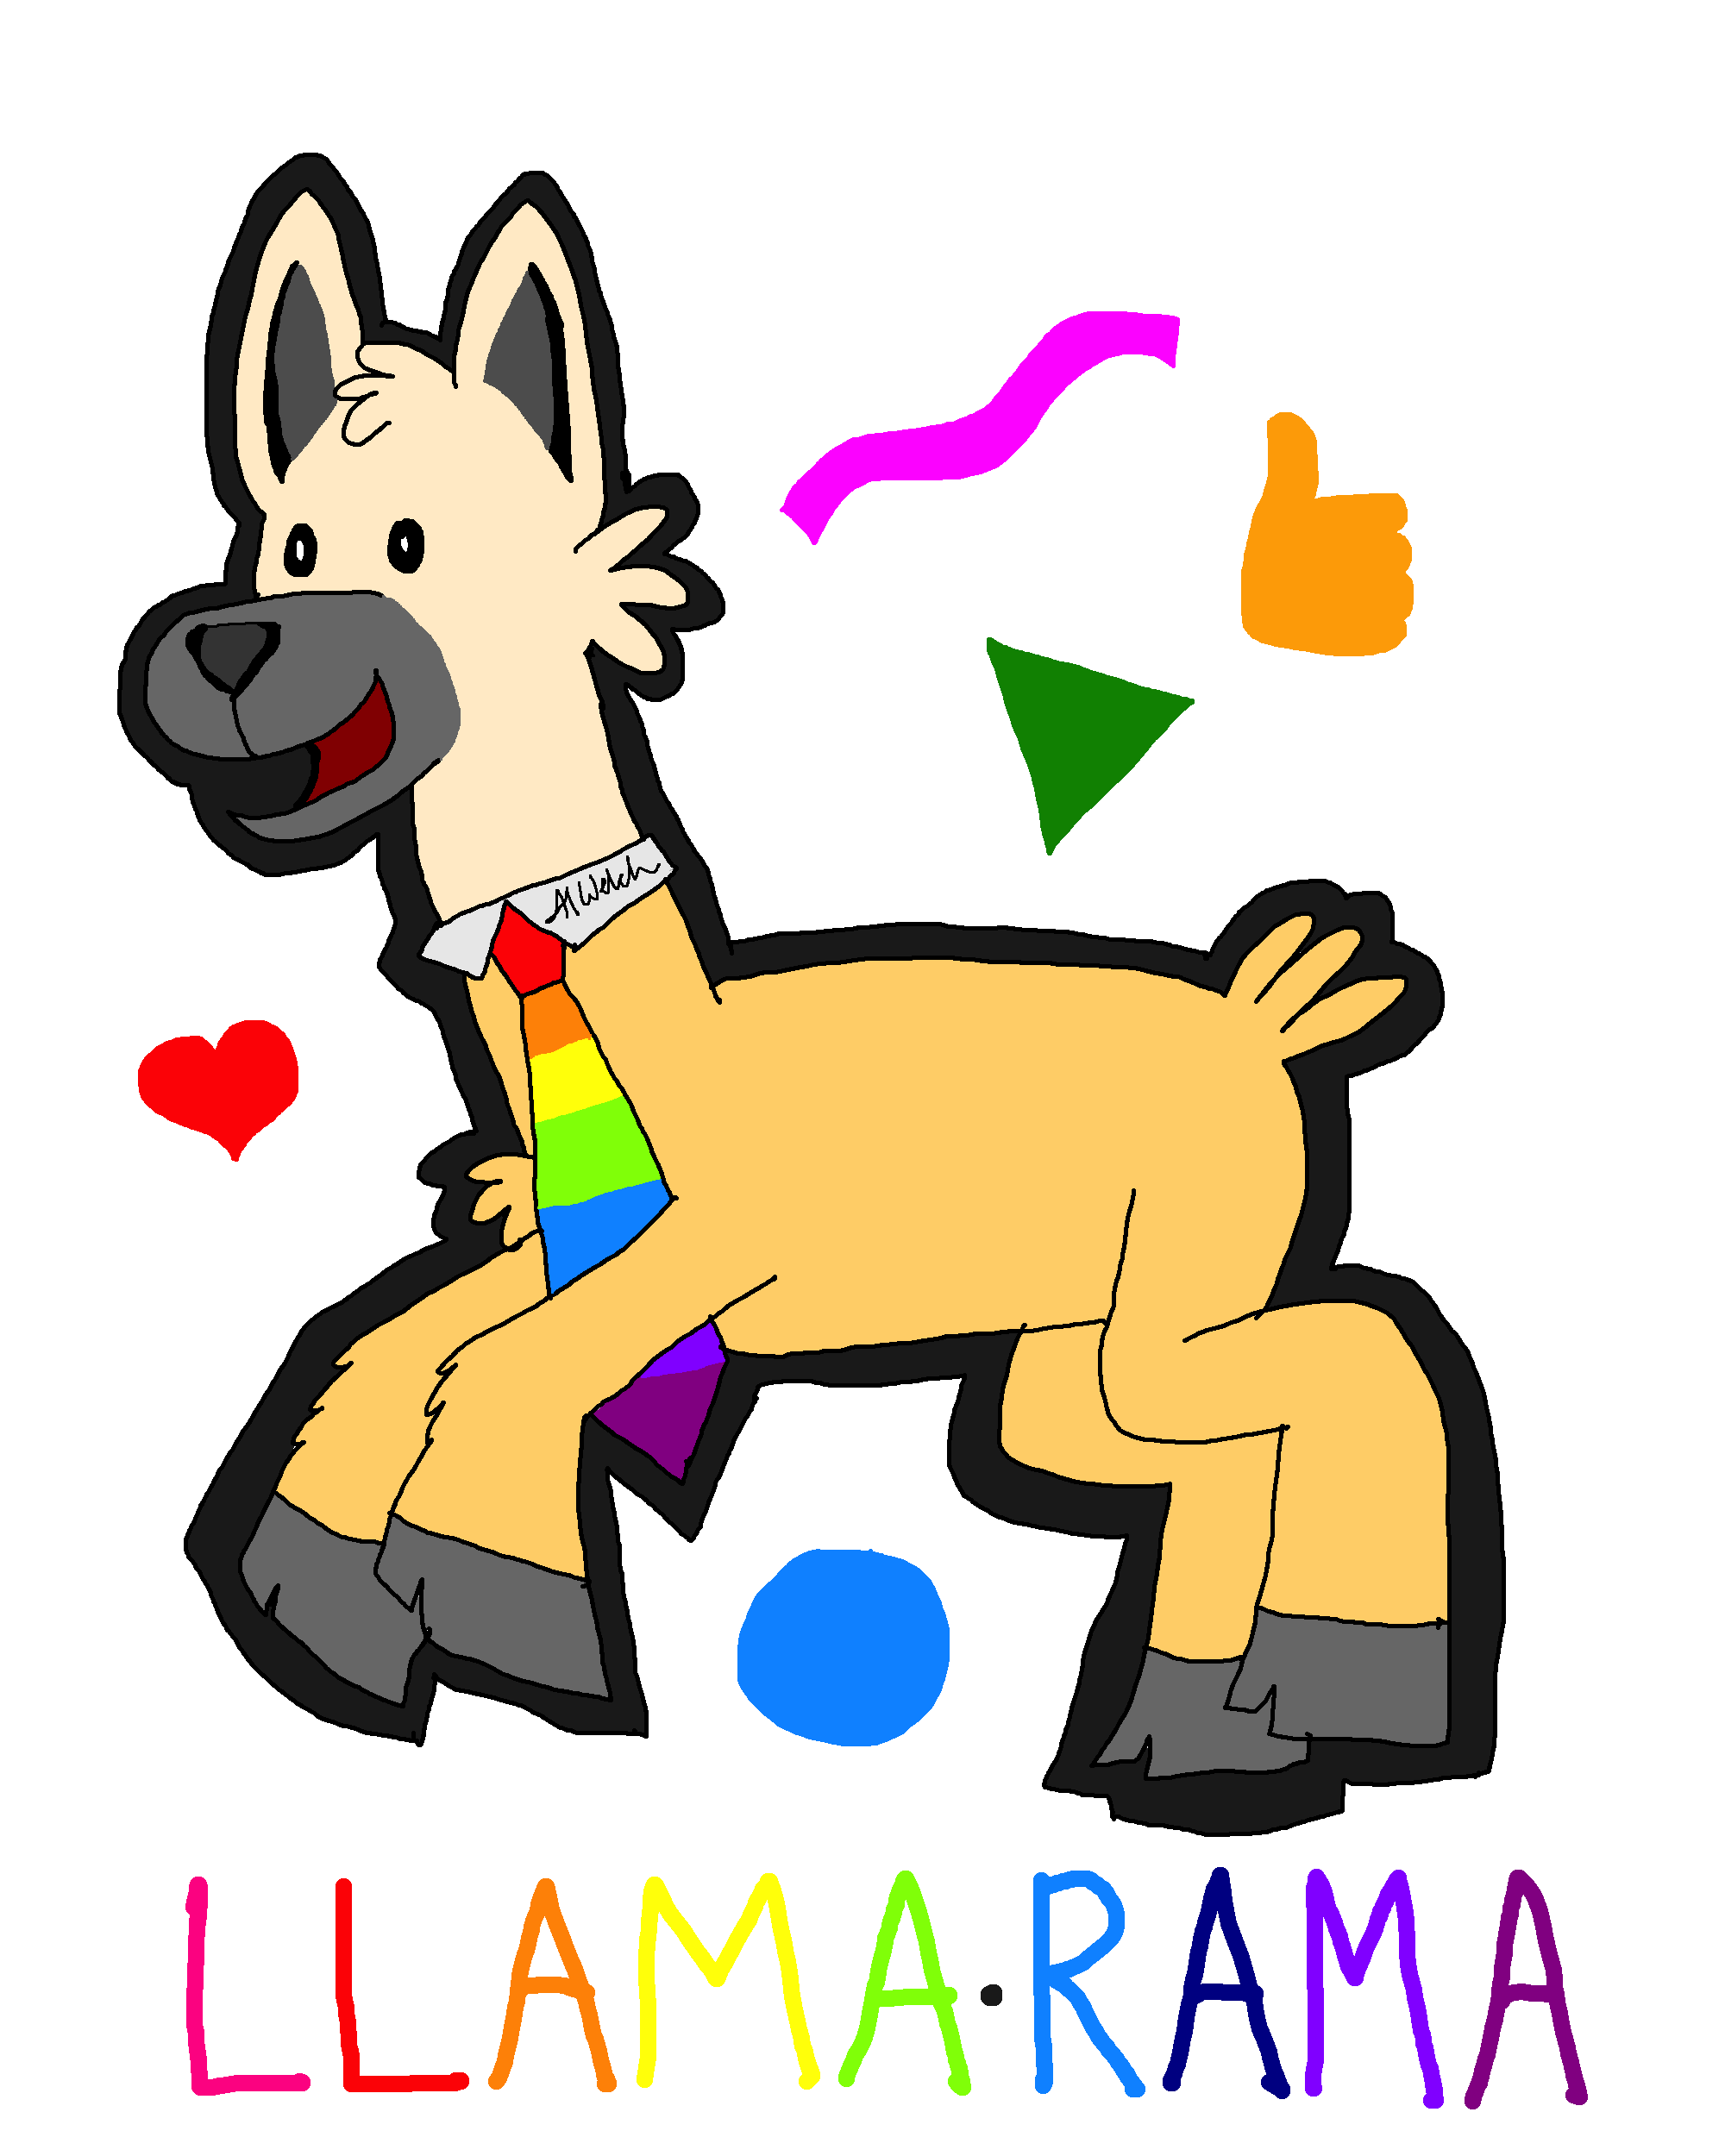 The Llama of the Good Times